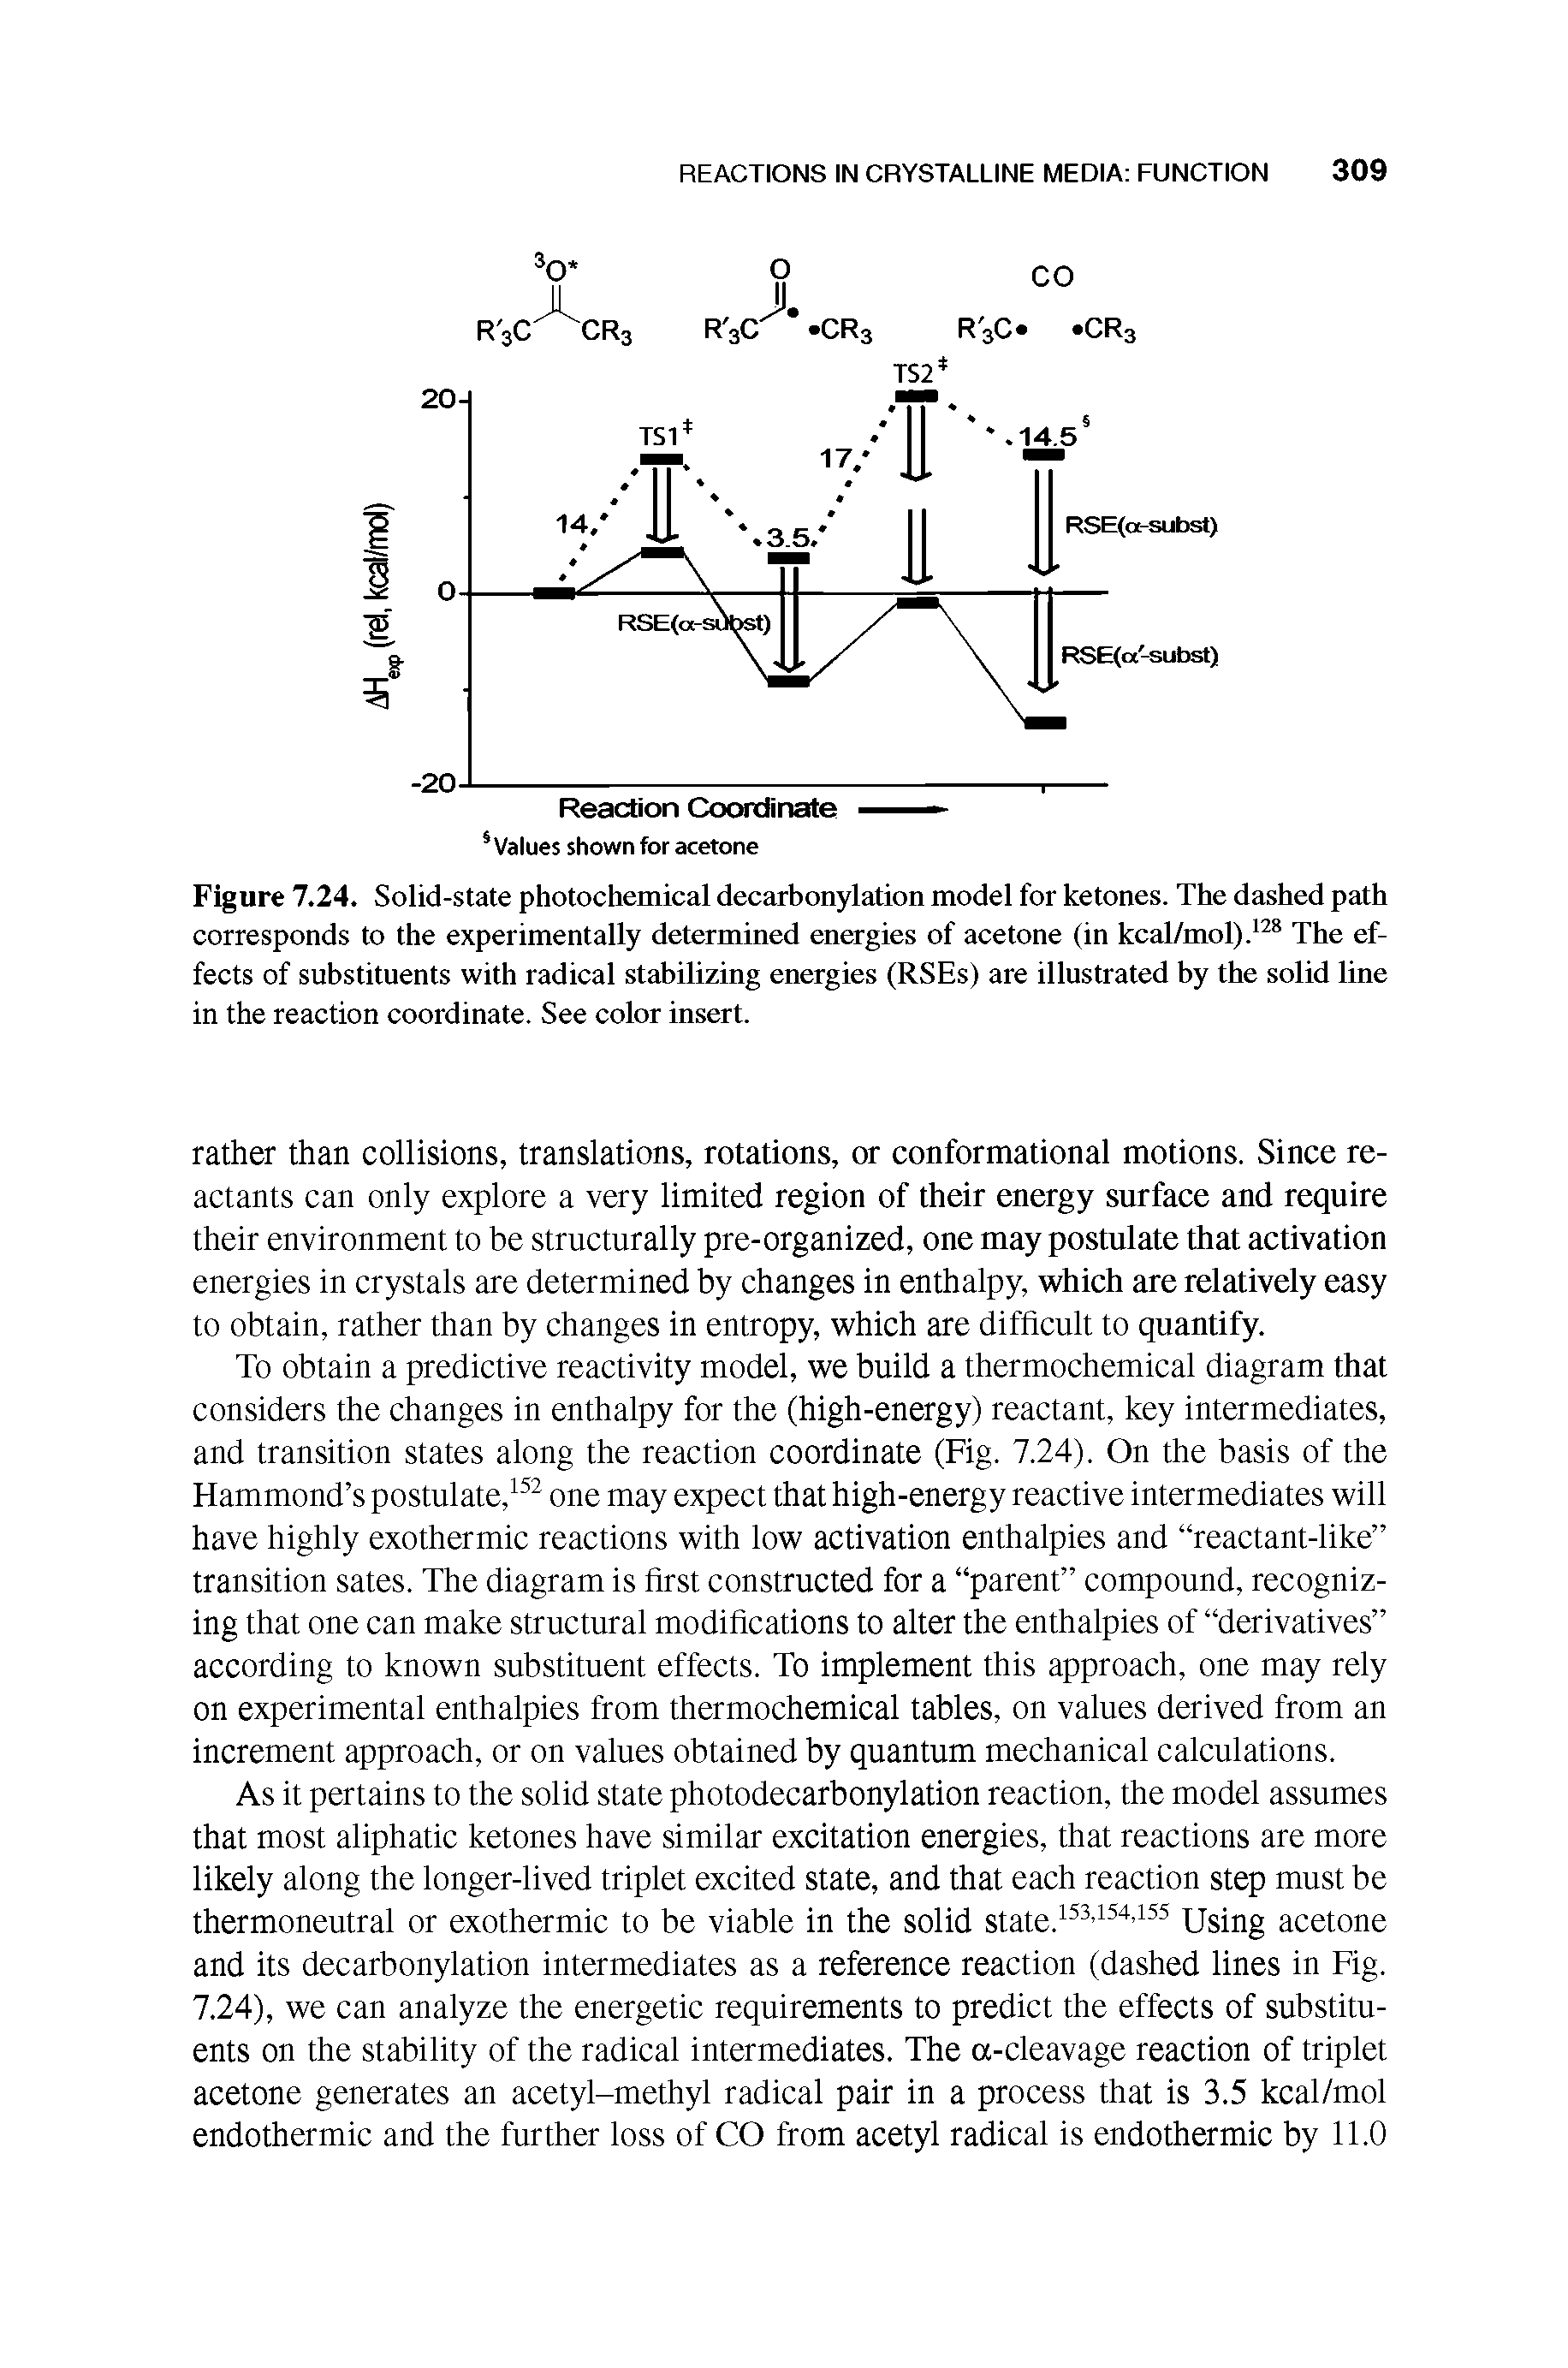 Figure 7.24. Solid-state photochemical decarbonylation model for ketones. The dashed path corresponds to the experimentally determined energies of acetone (in kcal/mol). The effects of substituents with radical stabilizing energies (RSEs) are illustrated by the solid line in the reaction coordinate. See color insert.